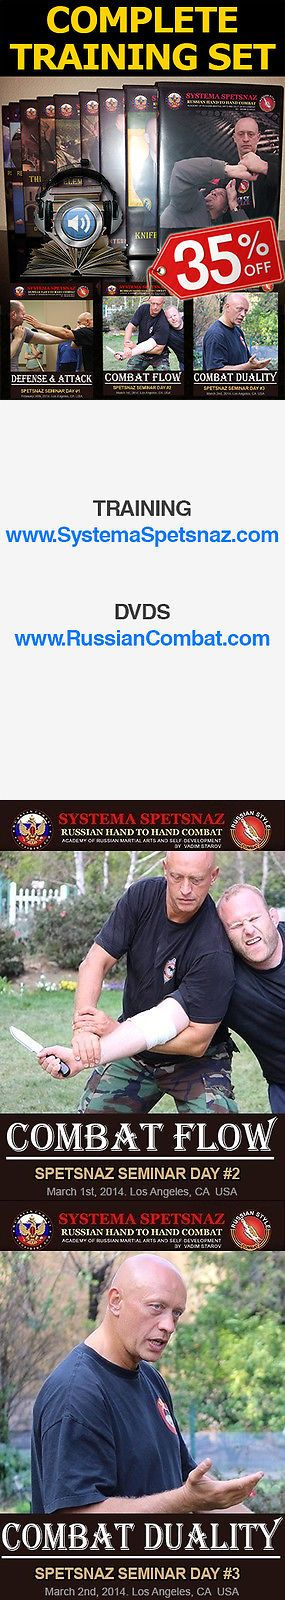 DVDs Videos and Books 73991: Russian Martial Arts Dvd Set - 20 Self-Defense Videos Of Russian Combat Systema -> BUY IT NOW ONLY: $636.48 on eBay!